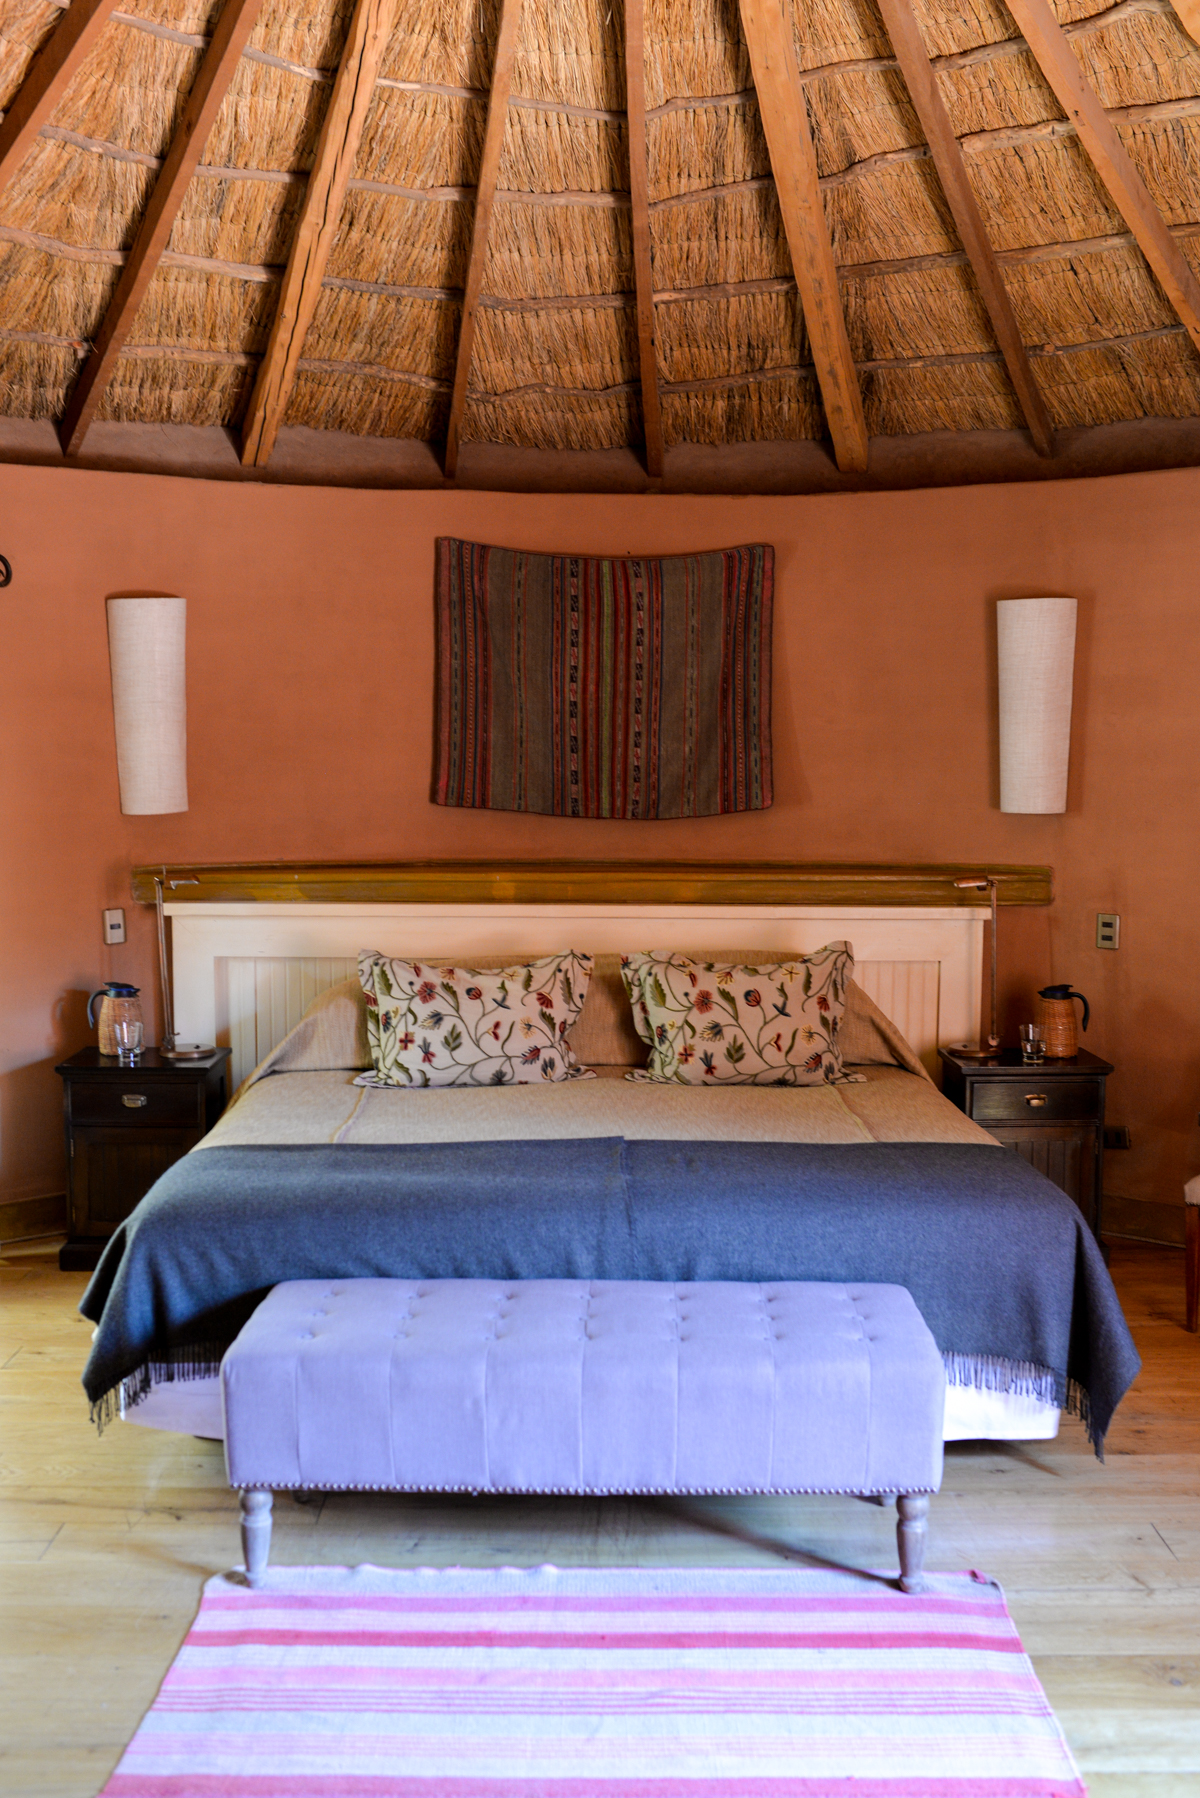 Stacie Flinner x Awasi Atacama Relais and Chateaux-19